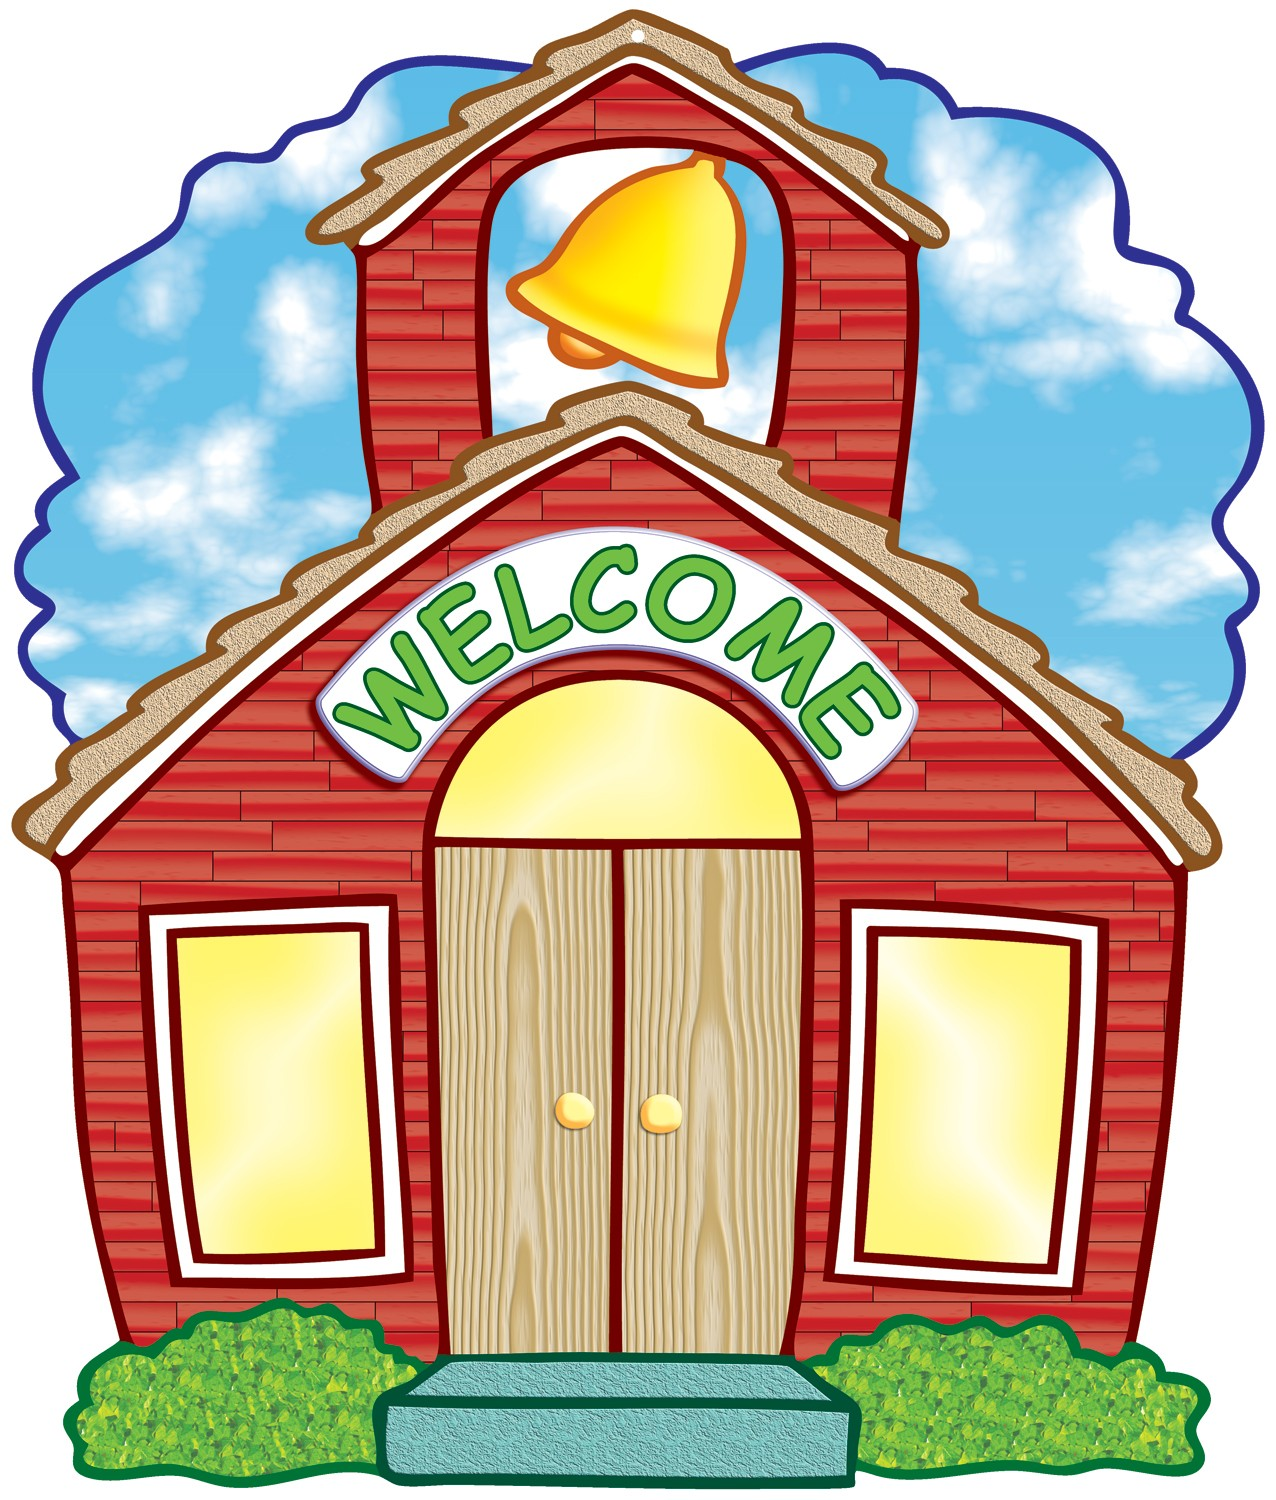 School house welcome back to school schoolhouse clipart.